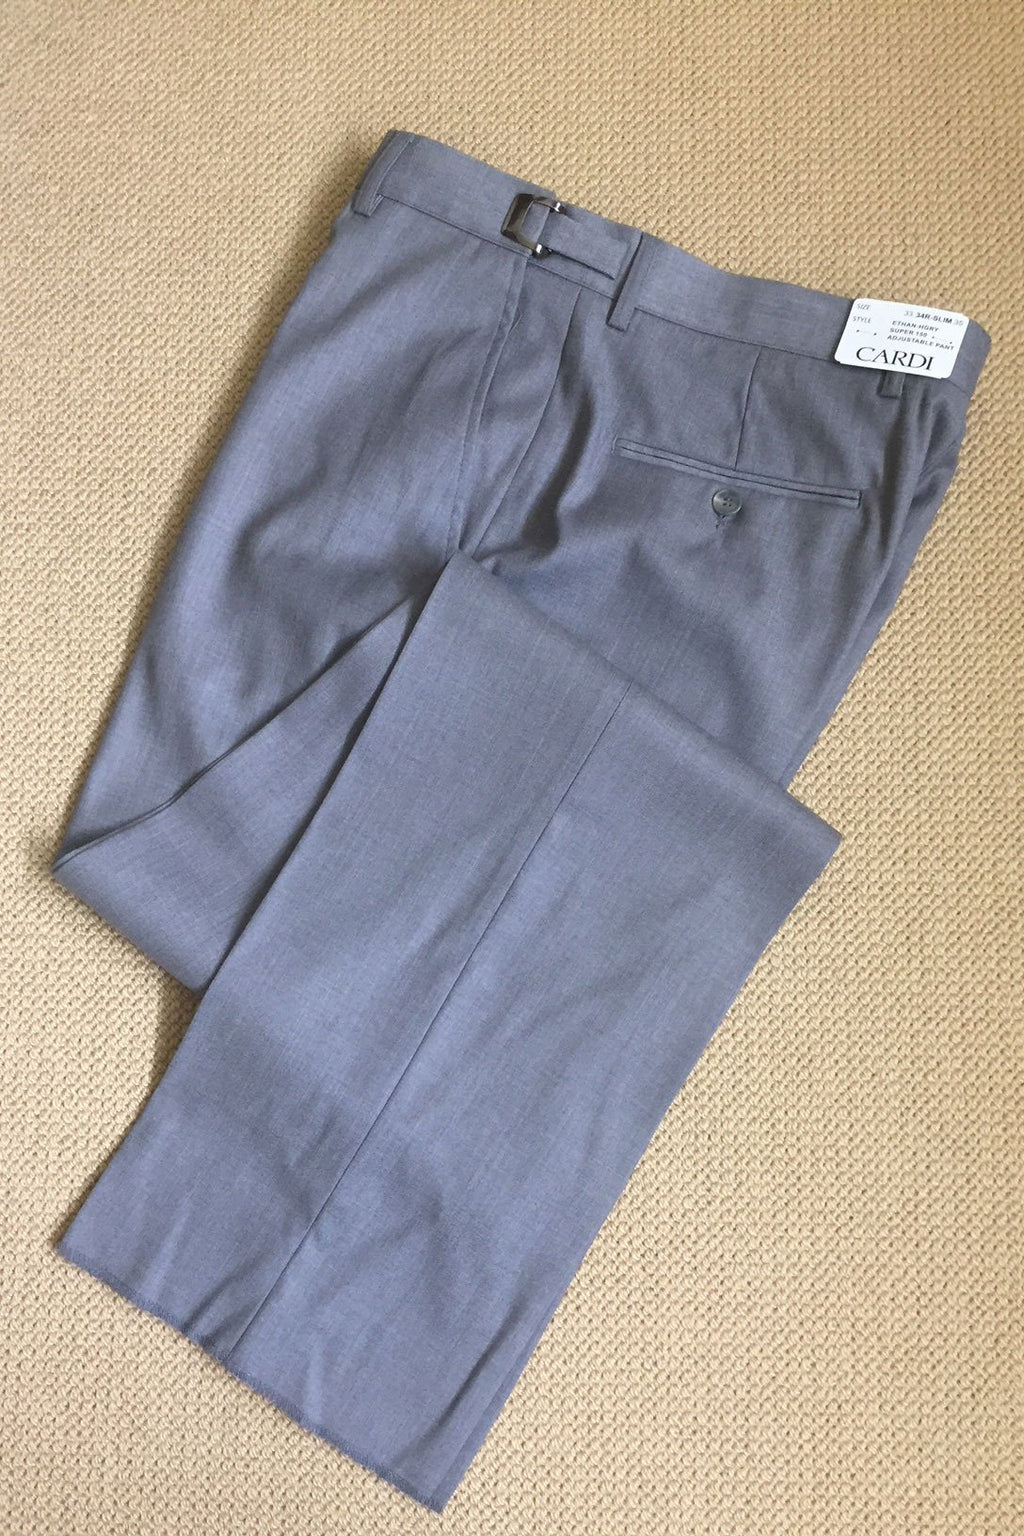 Pantalón Ethan Heather Grey  Caballero